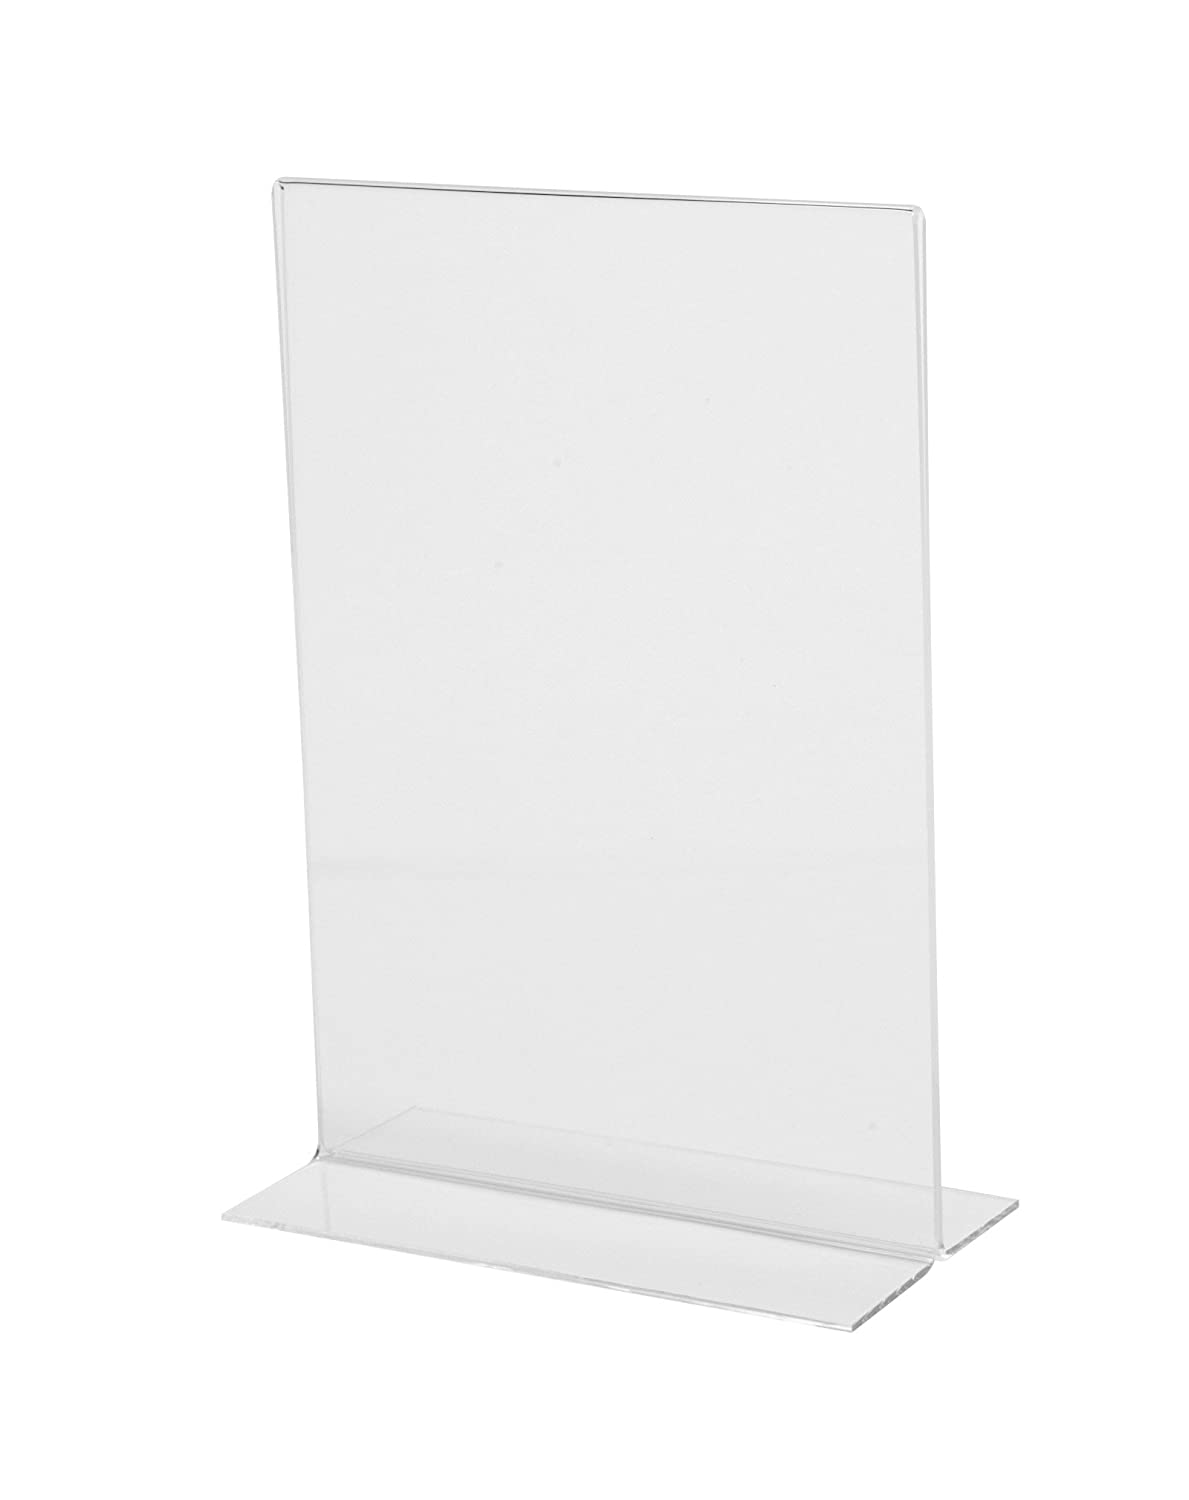 Sigel TA220 Sign Holder, Upright, for A4, Double-Sided Presentation, Acrylic